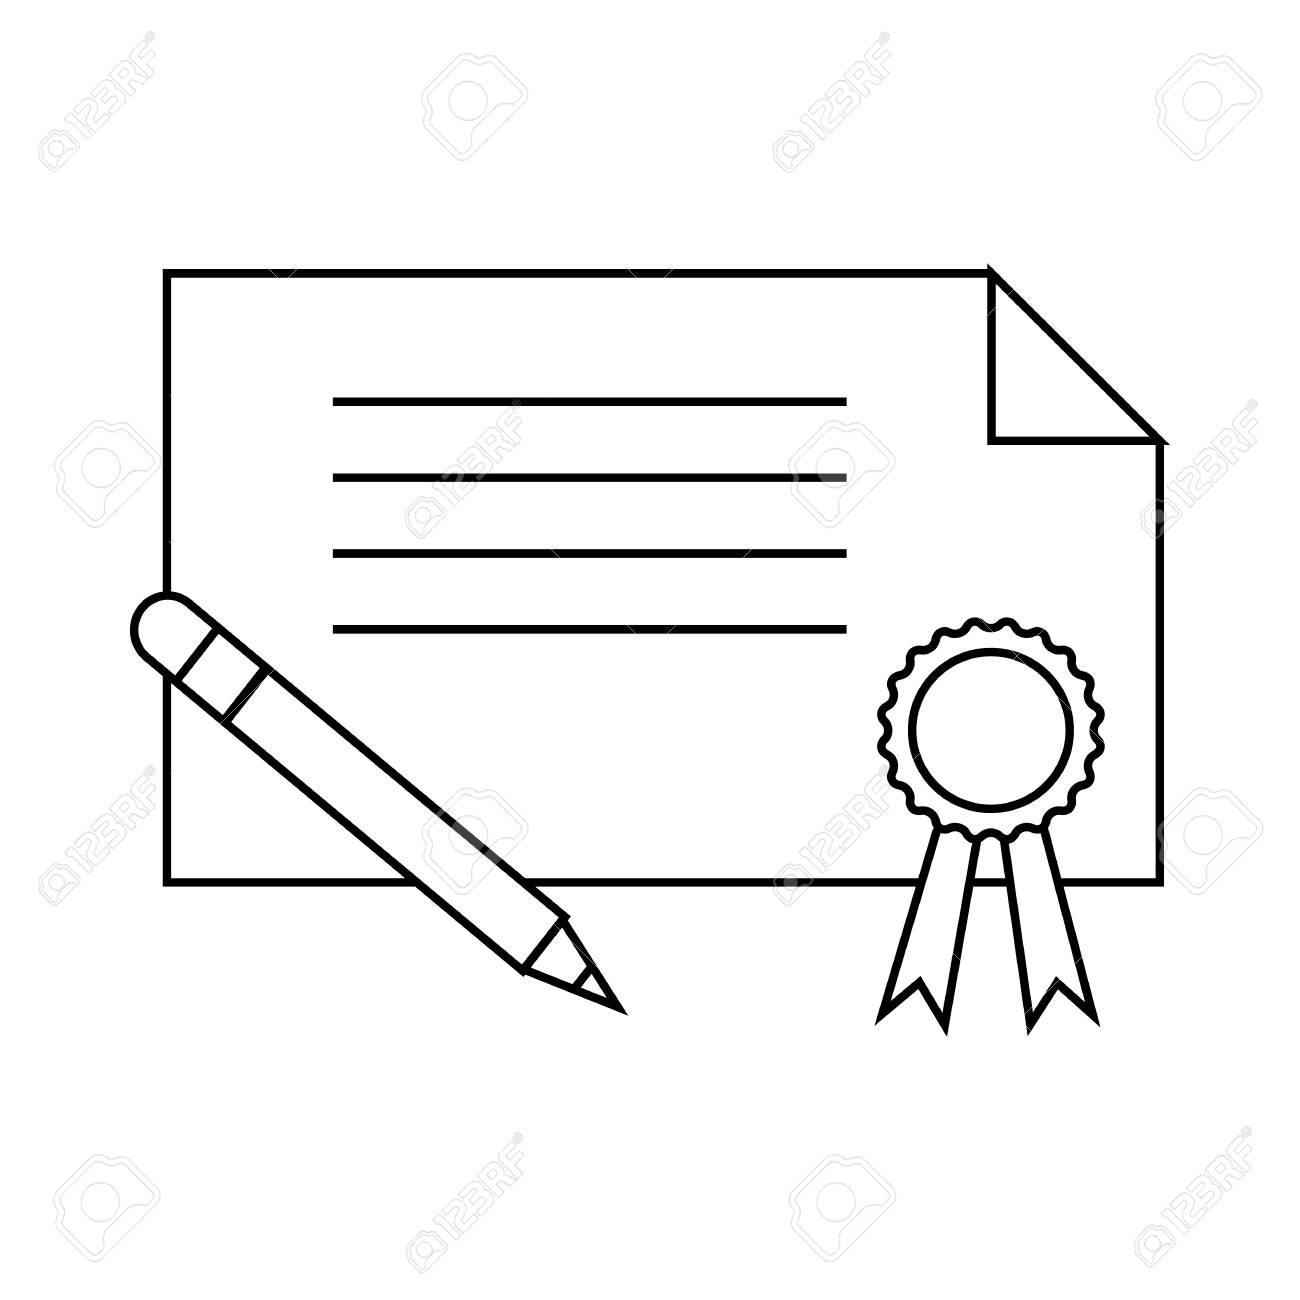 certificate and pen icon in outline style on a white background